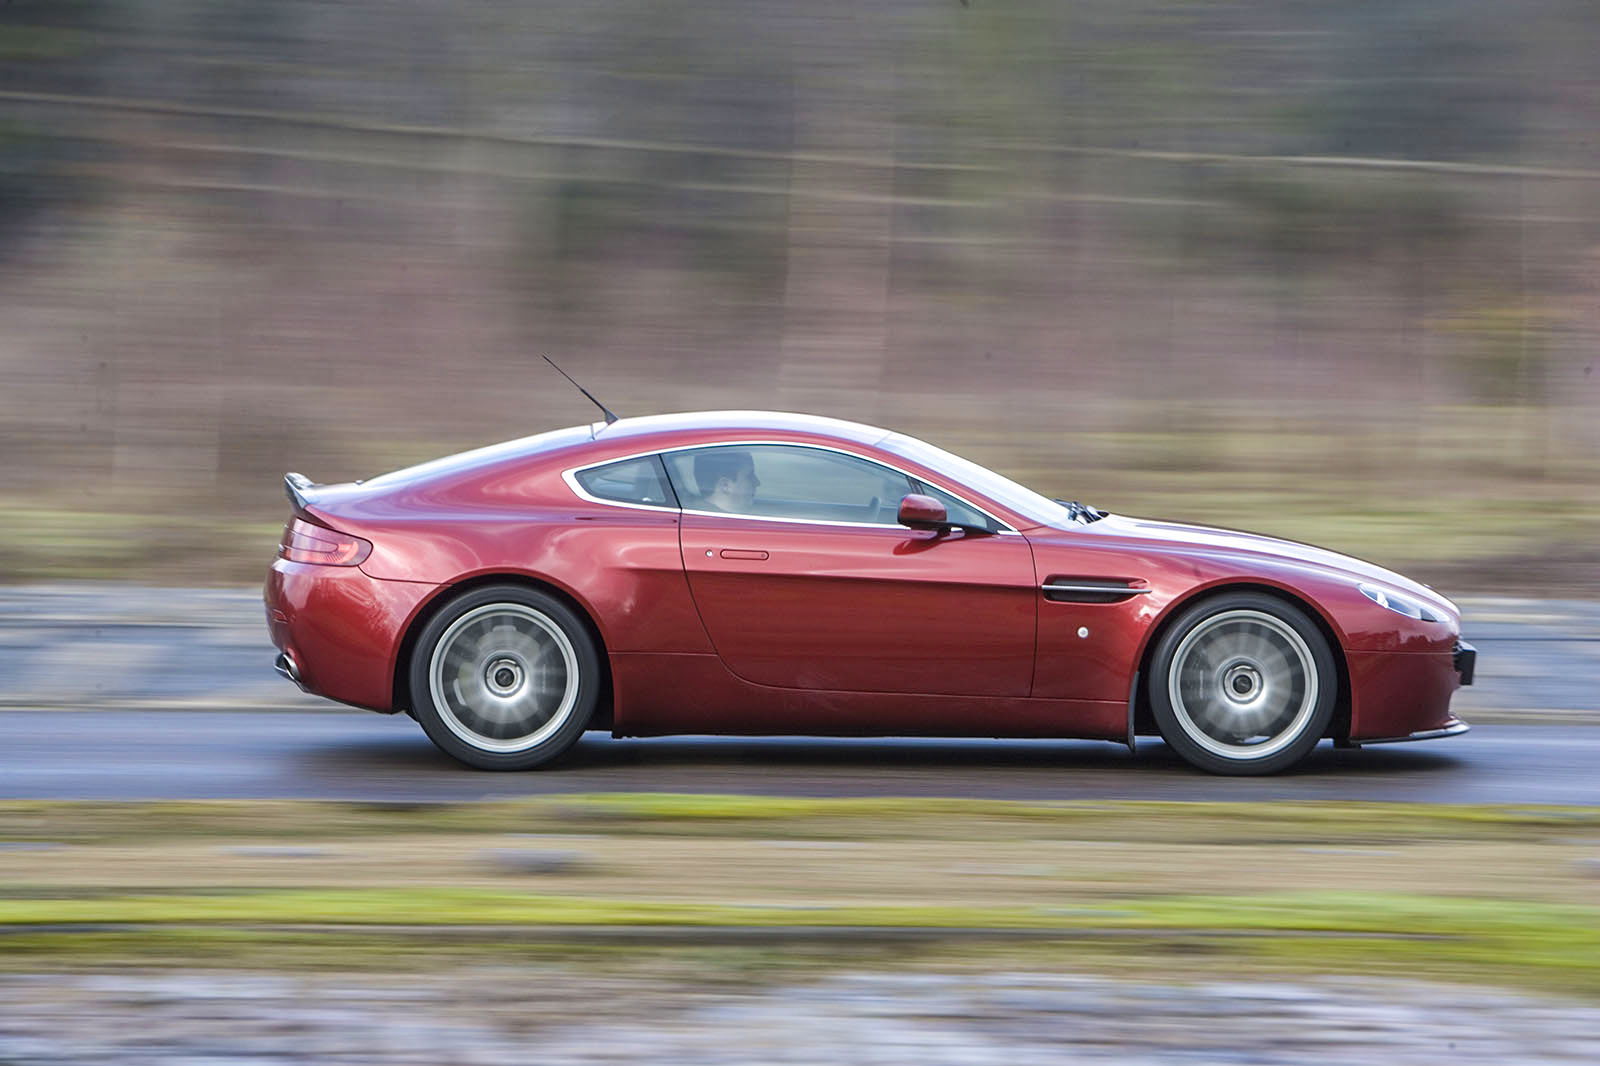 Meanwhile, Also In 2008, Envious 4.3 Owners Were Offered The Chance To  Upgrade Their Vantage With A New Induction System And ECU Software That  Boosted Power ...